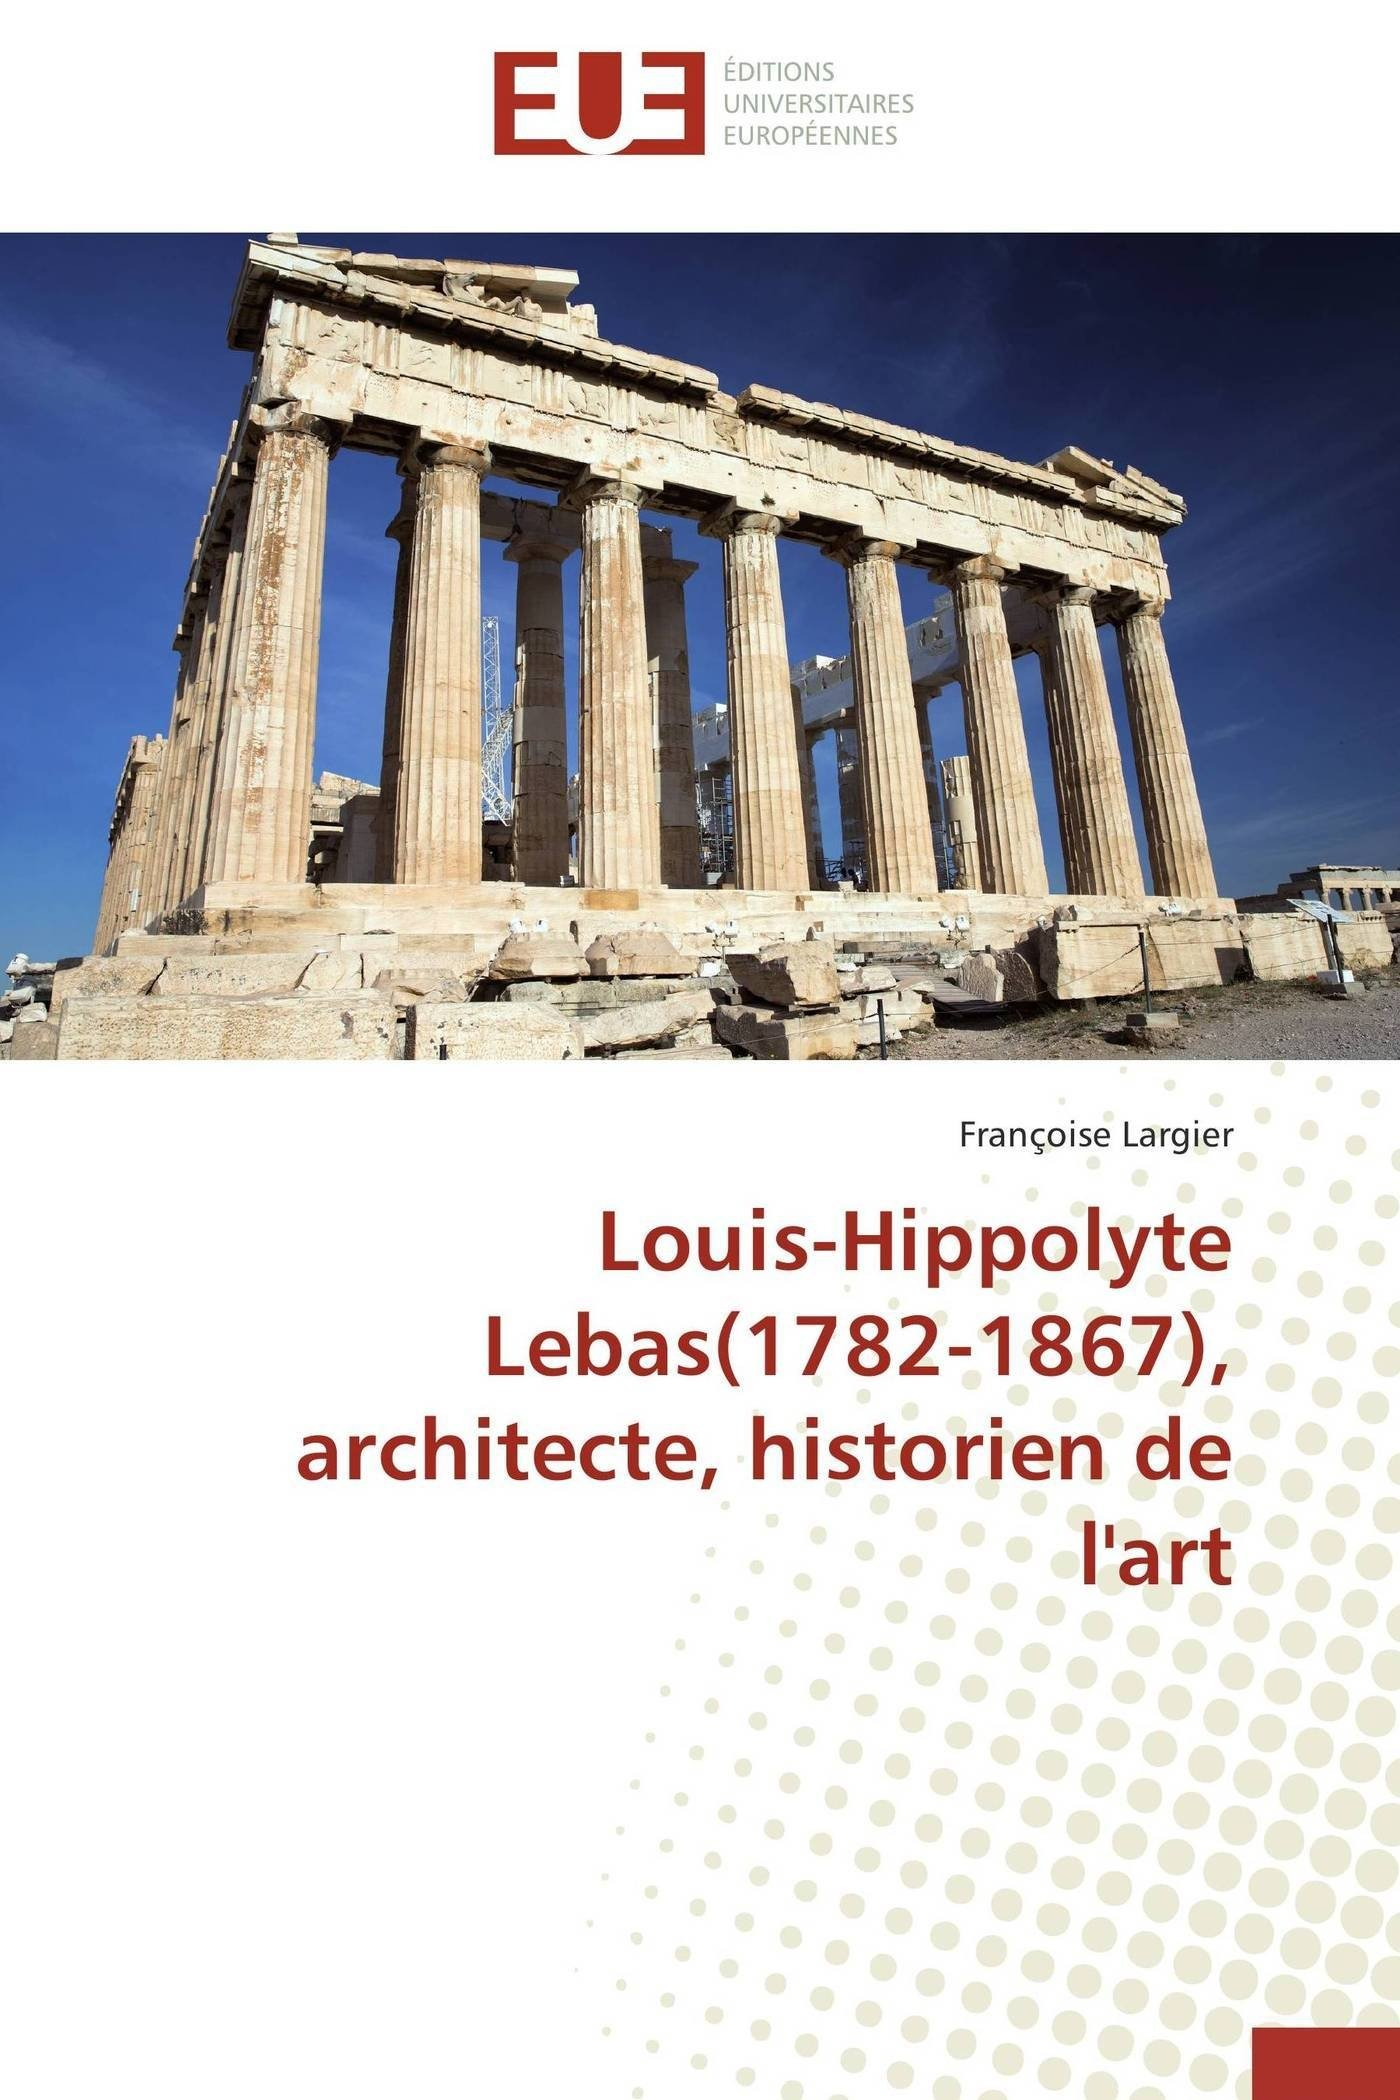 Read Online Louis-hippolyte lebas(1782-1867), architecte, historien de l'art (Omn.Univ.Europ.) (French Edition) ebook